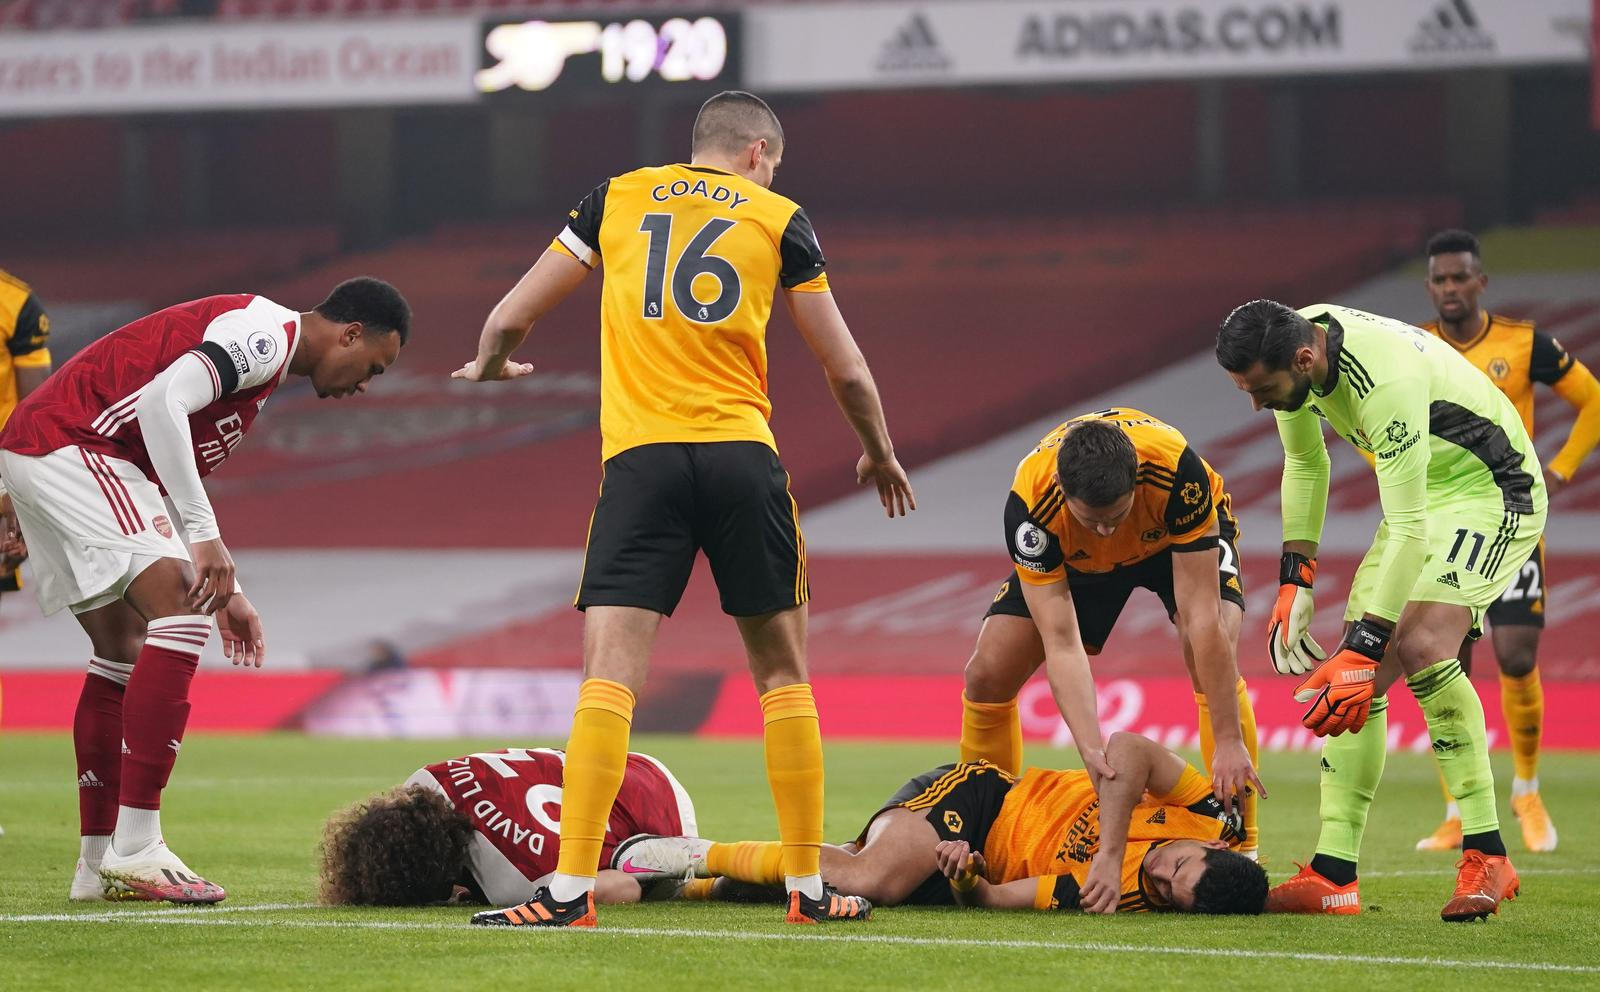 Wolves manager feared for Jimenez after head injury